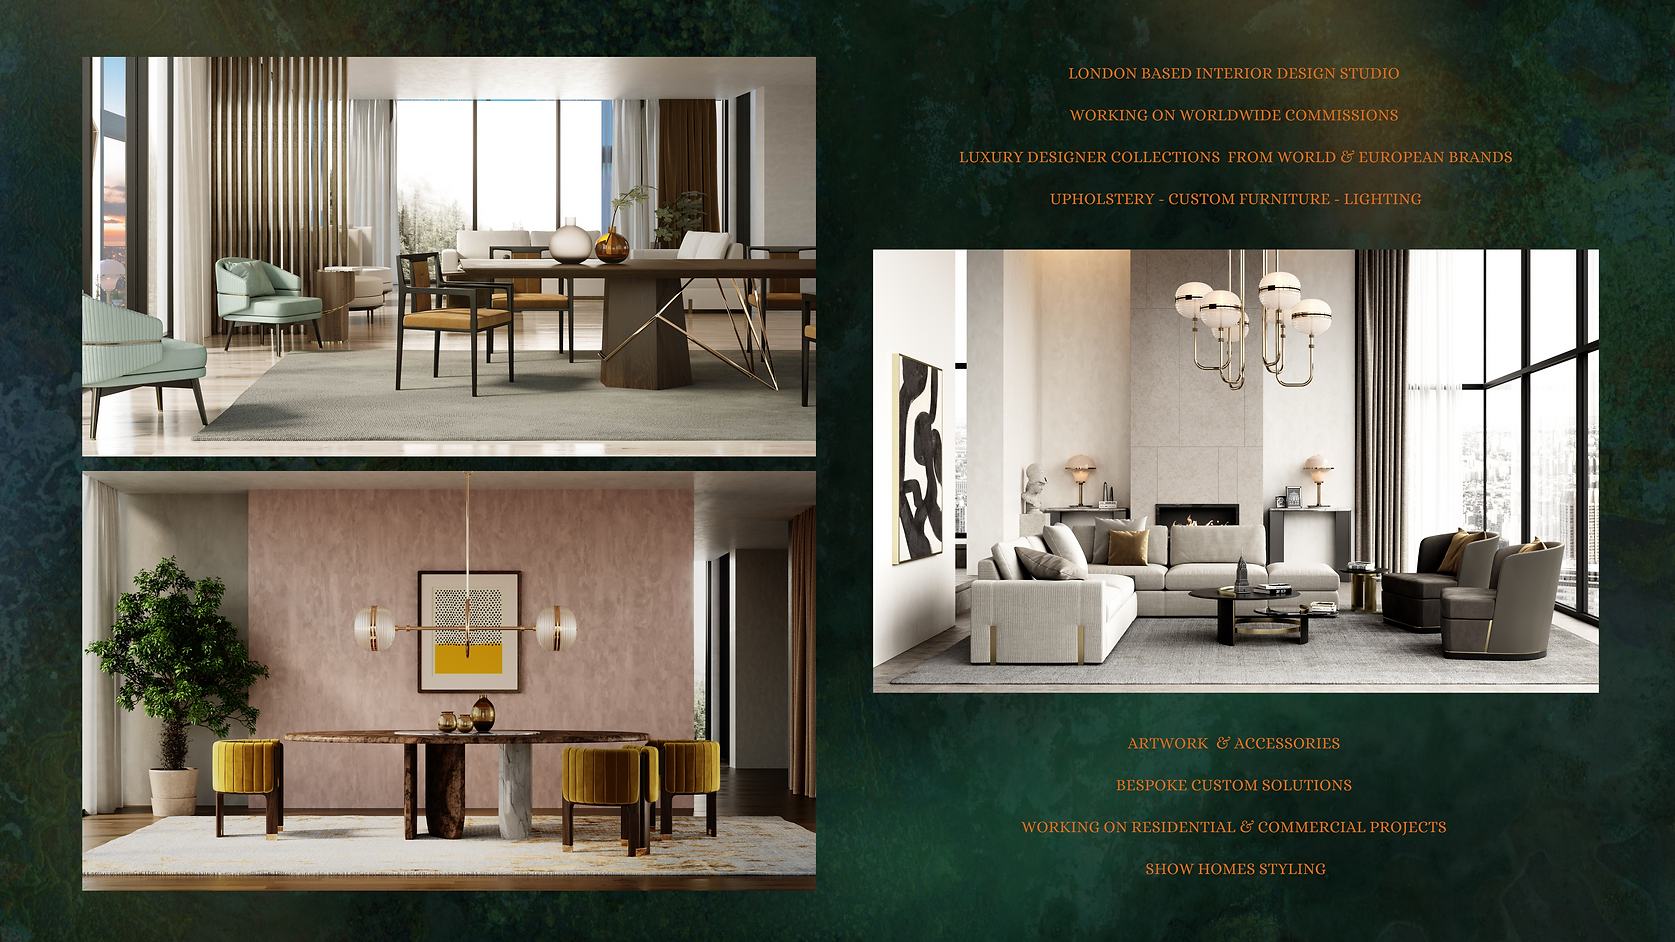 LUXURY INTERIORS WORLDWIDE COMMISSIONS (